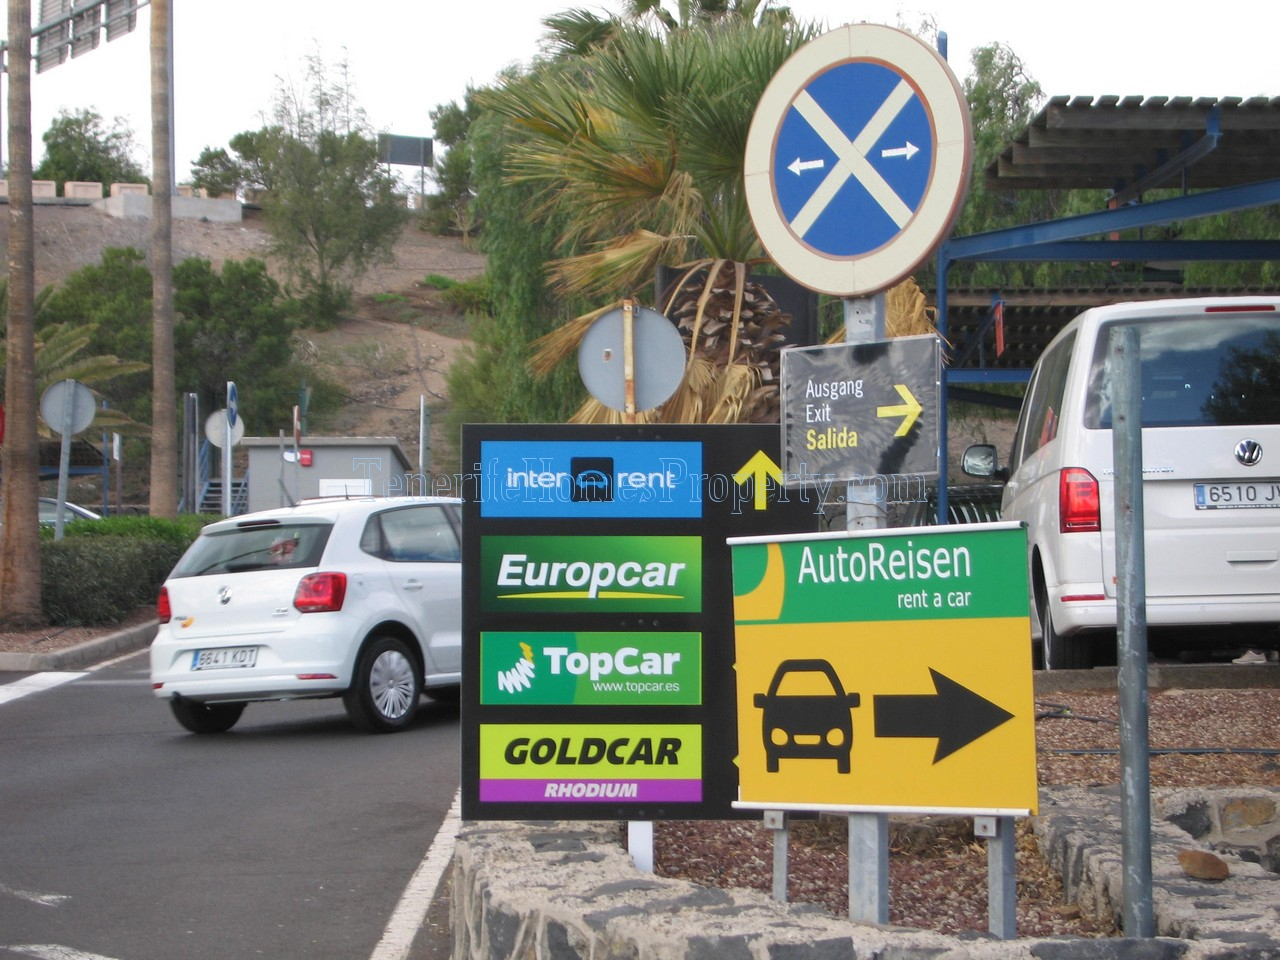 Car hire Tenerife airport south AutoReisen